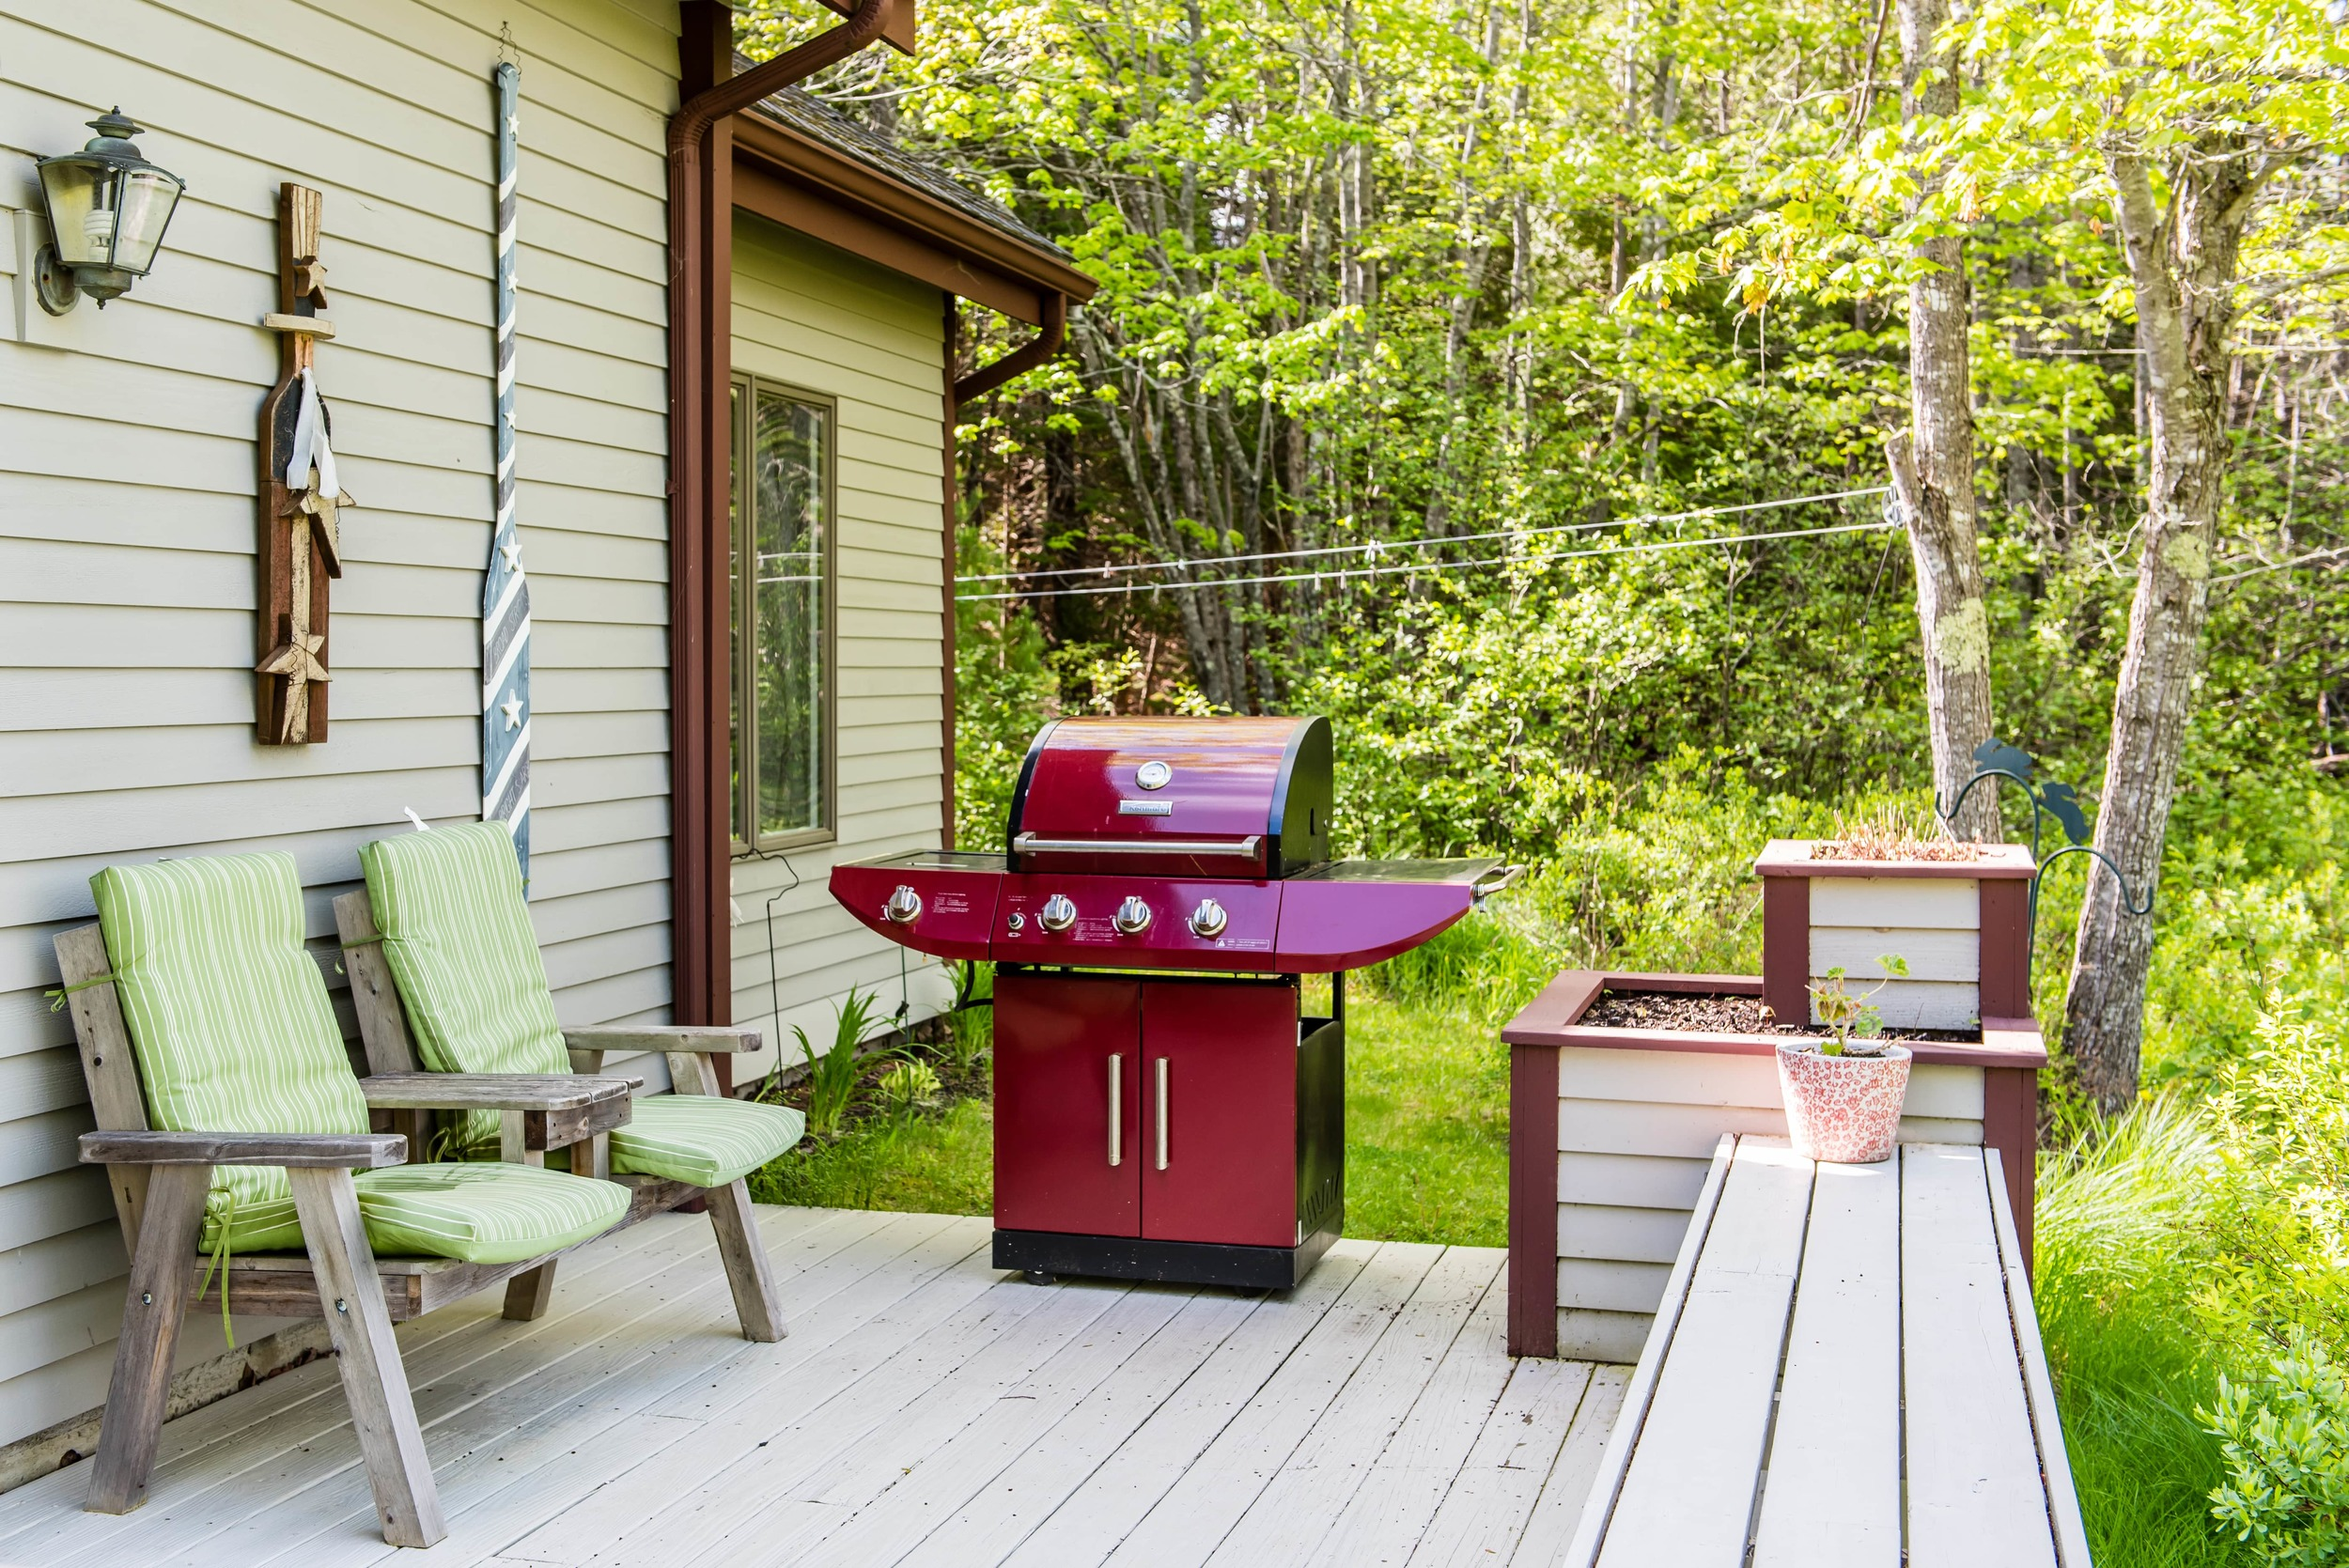 The large deck has a grill, picnic table and ample additional seating.